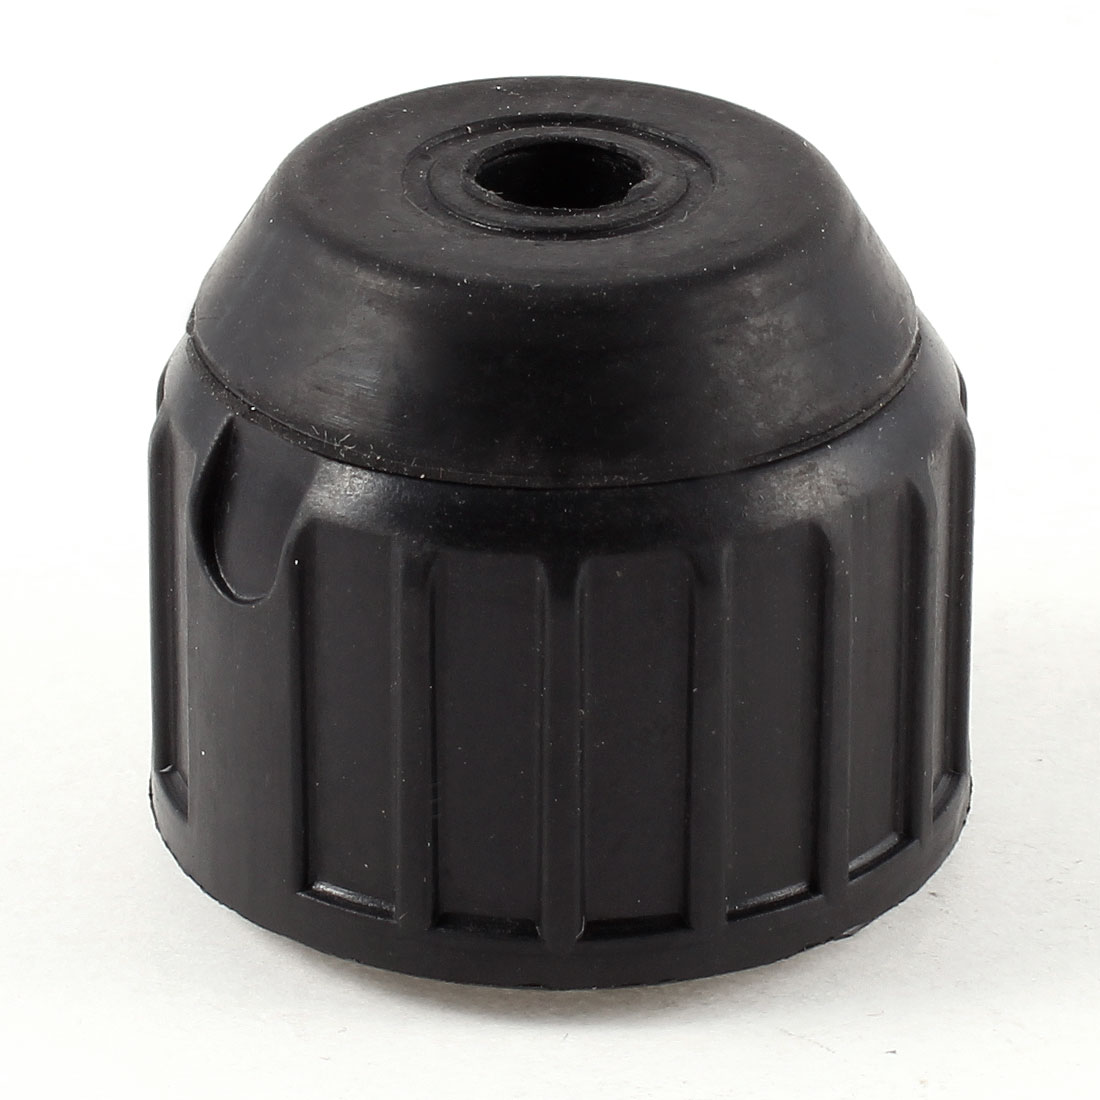 Replacements Black Drill Chuck for Makita HR2010 Rotary Hammer